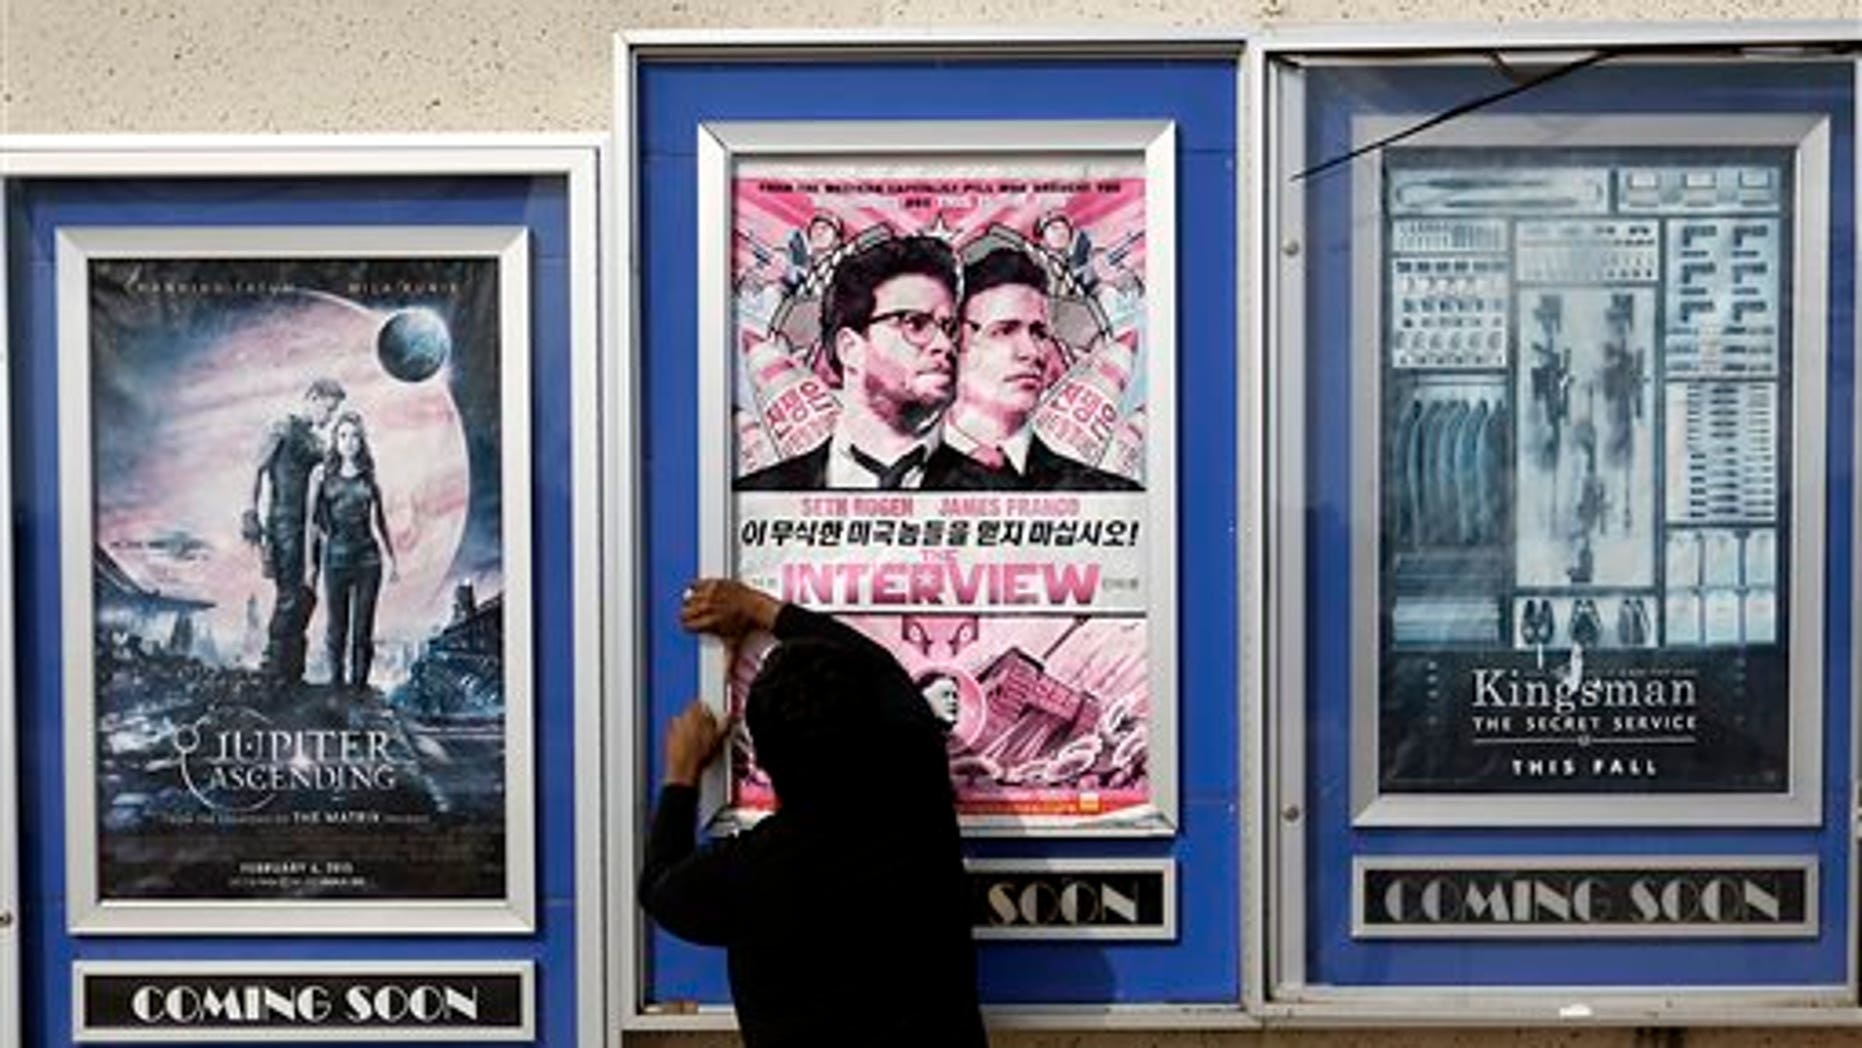 """FILE - In this Wednesday, Dec. 17, 2014 file photo, a worker removes poster for the movie """"The Interview"""" from a display case at a Carmike Cinemas movie theater in Atlanta. The Alamo Drafthouse in Texas and Atlanta's Plaza Theater on Tuesday, Dec. 23, 2014 said they will begin showing """"The Interview"""" on Christmas Day, seemingly putting the comedy back in theaters after Sony Pictures Entertainment canceled its release. The Plaza is independently owned and not part of the Carmike chain. (AP Photo/David Goldman, File)"""